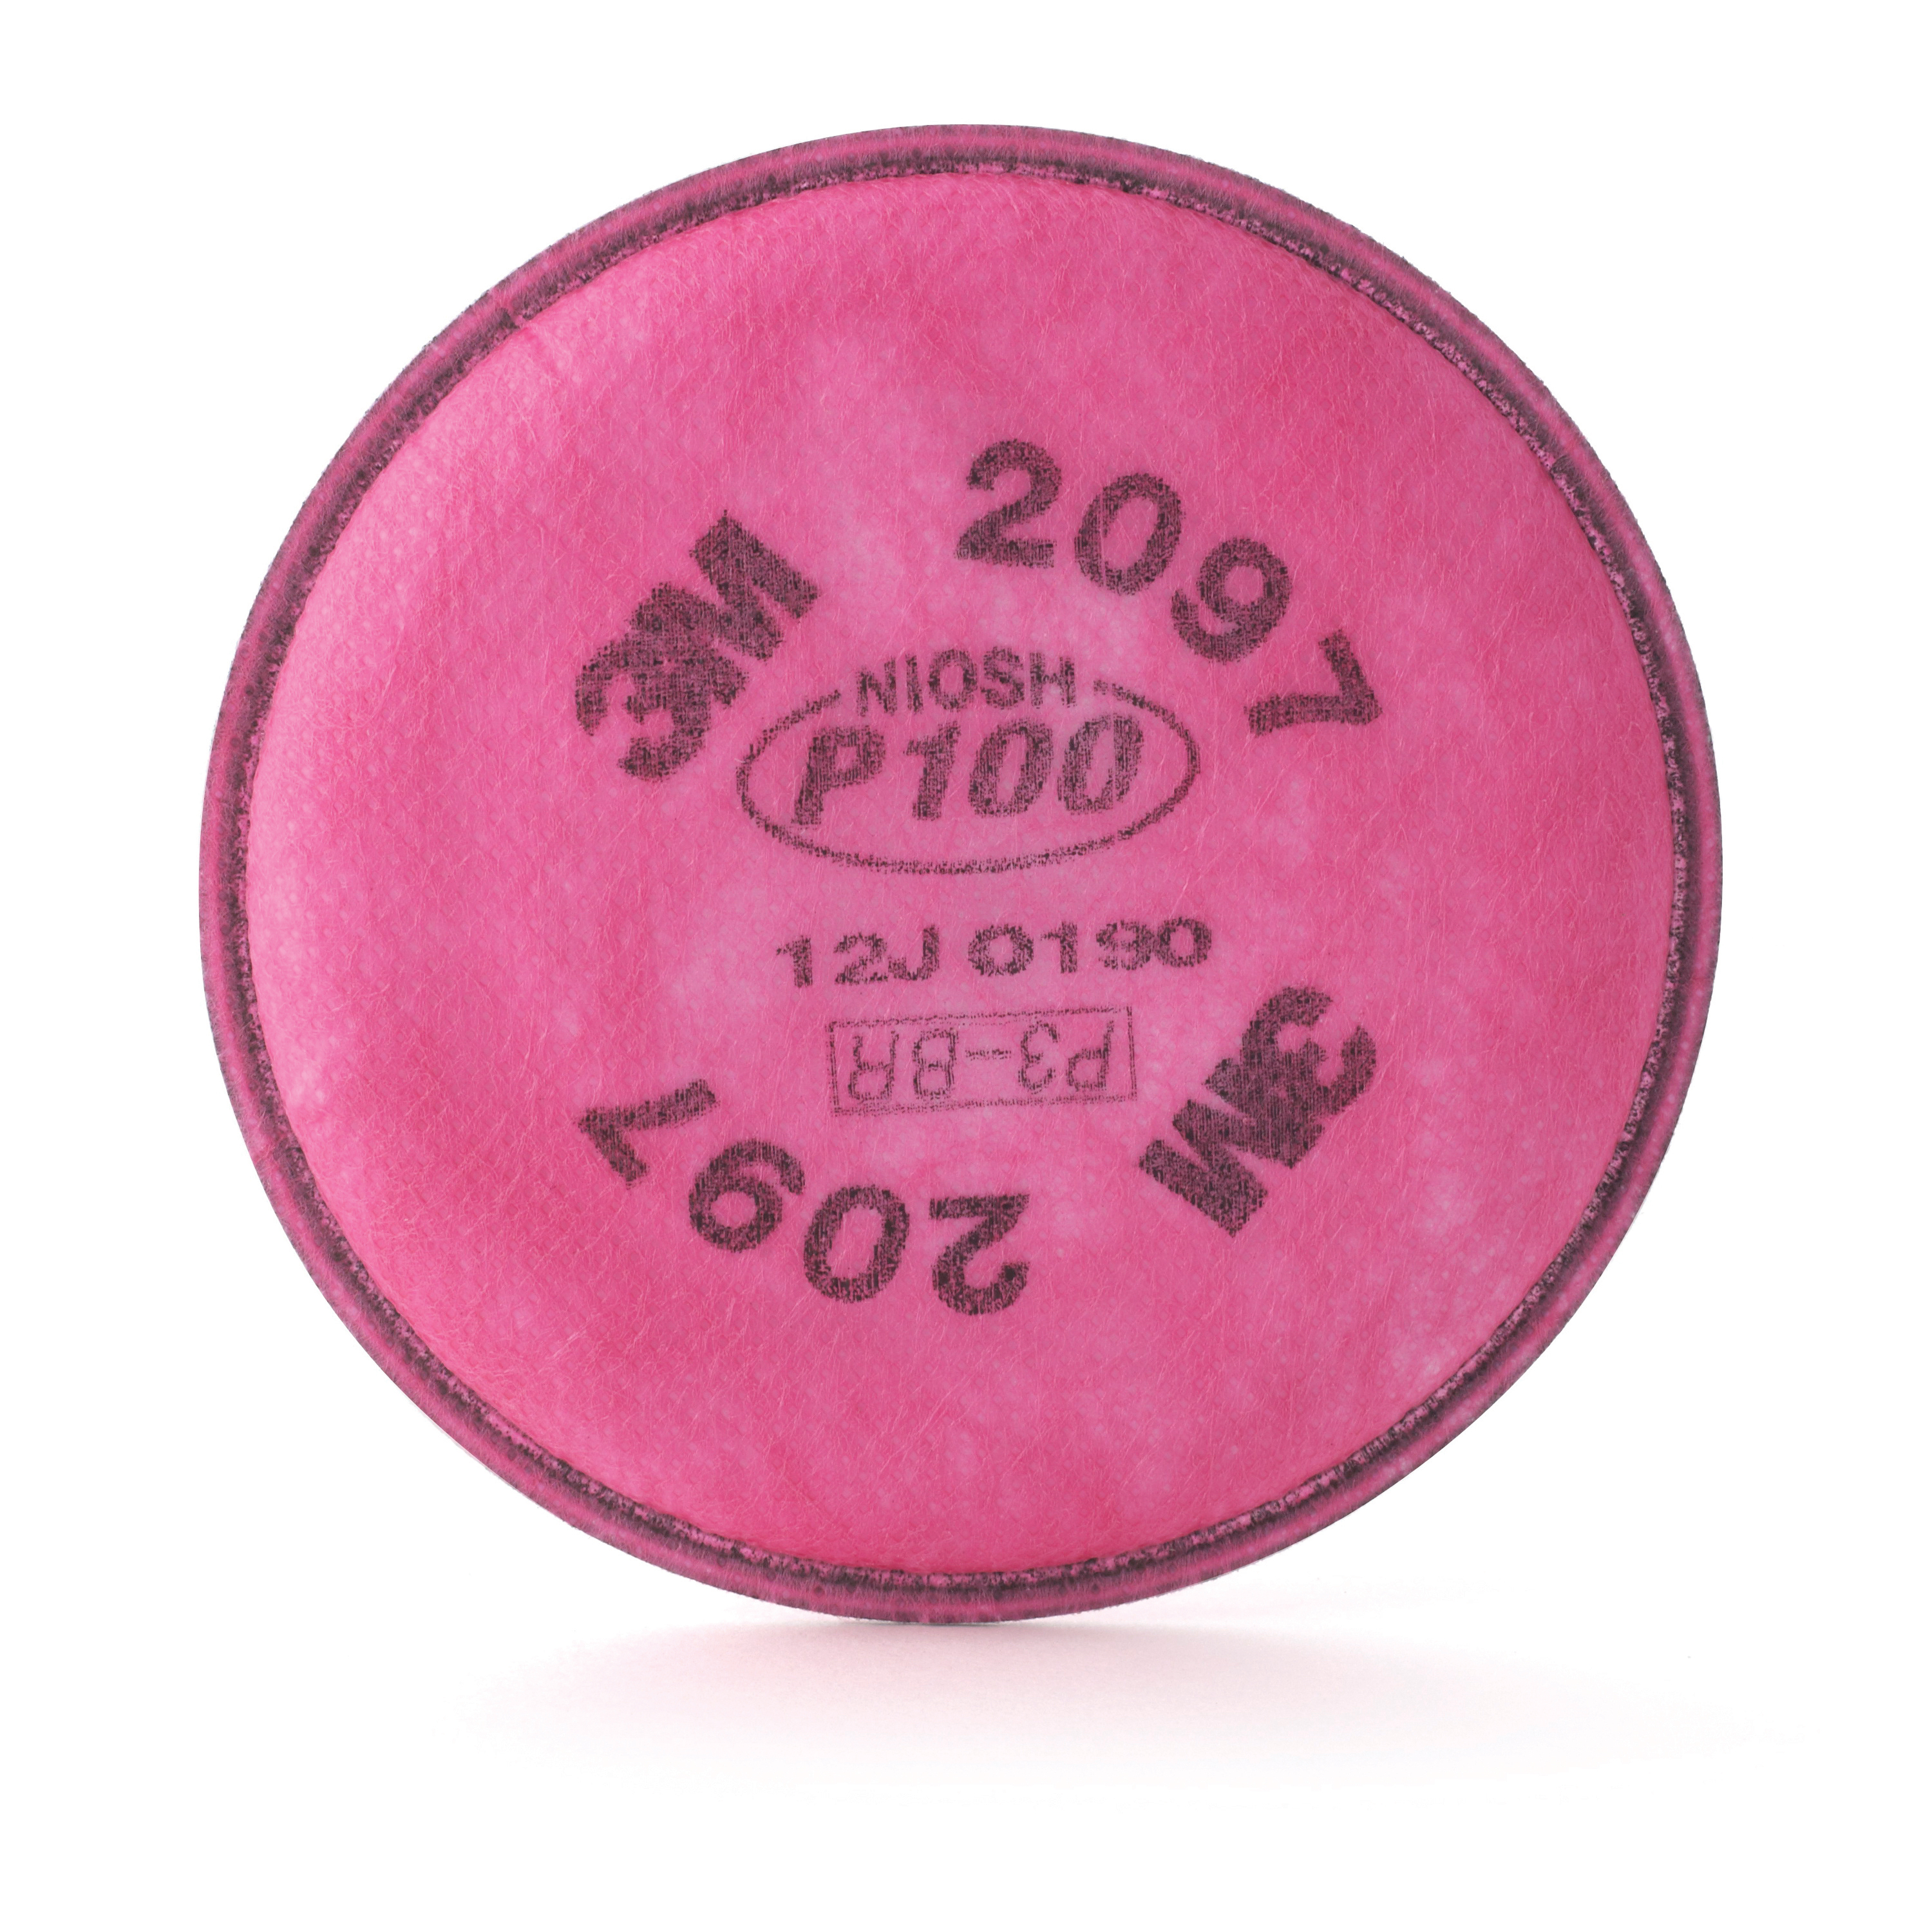 3M™ 051131-07184 2097 Particulate Filter With Nuisance Level Organic Vapor Relief, For Use With 3M™ 5000 Series Reusable Respirators, 6000 Series Cartridges with 502 Adapters, 6000, 7000 and FF-400 Series Respirators, P100 Filter Class, Bayonet Connection